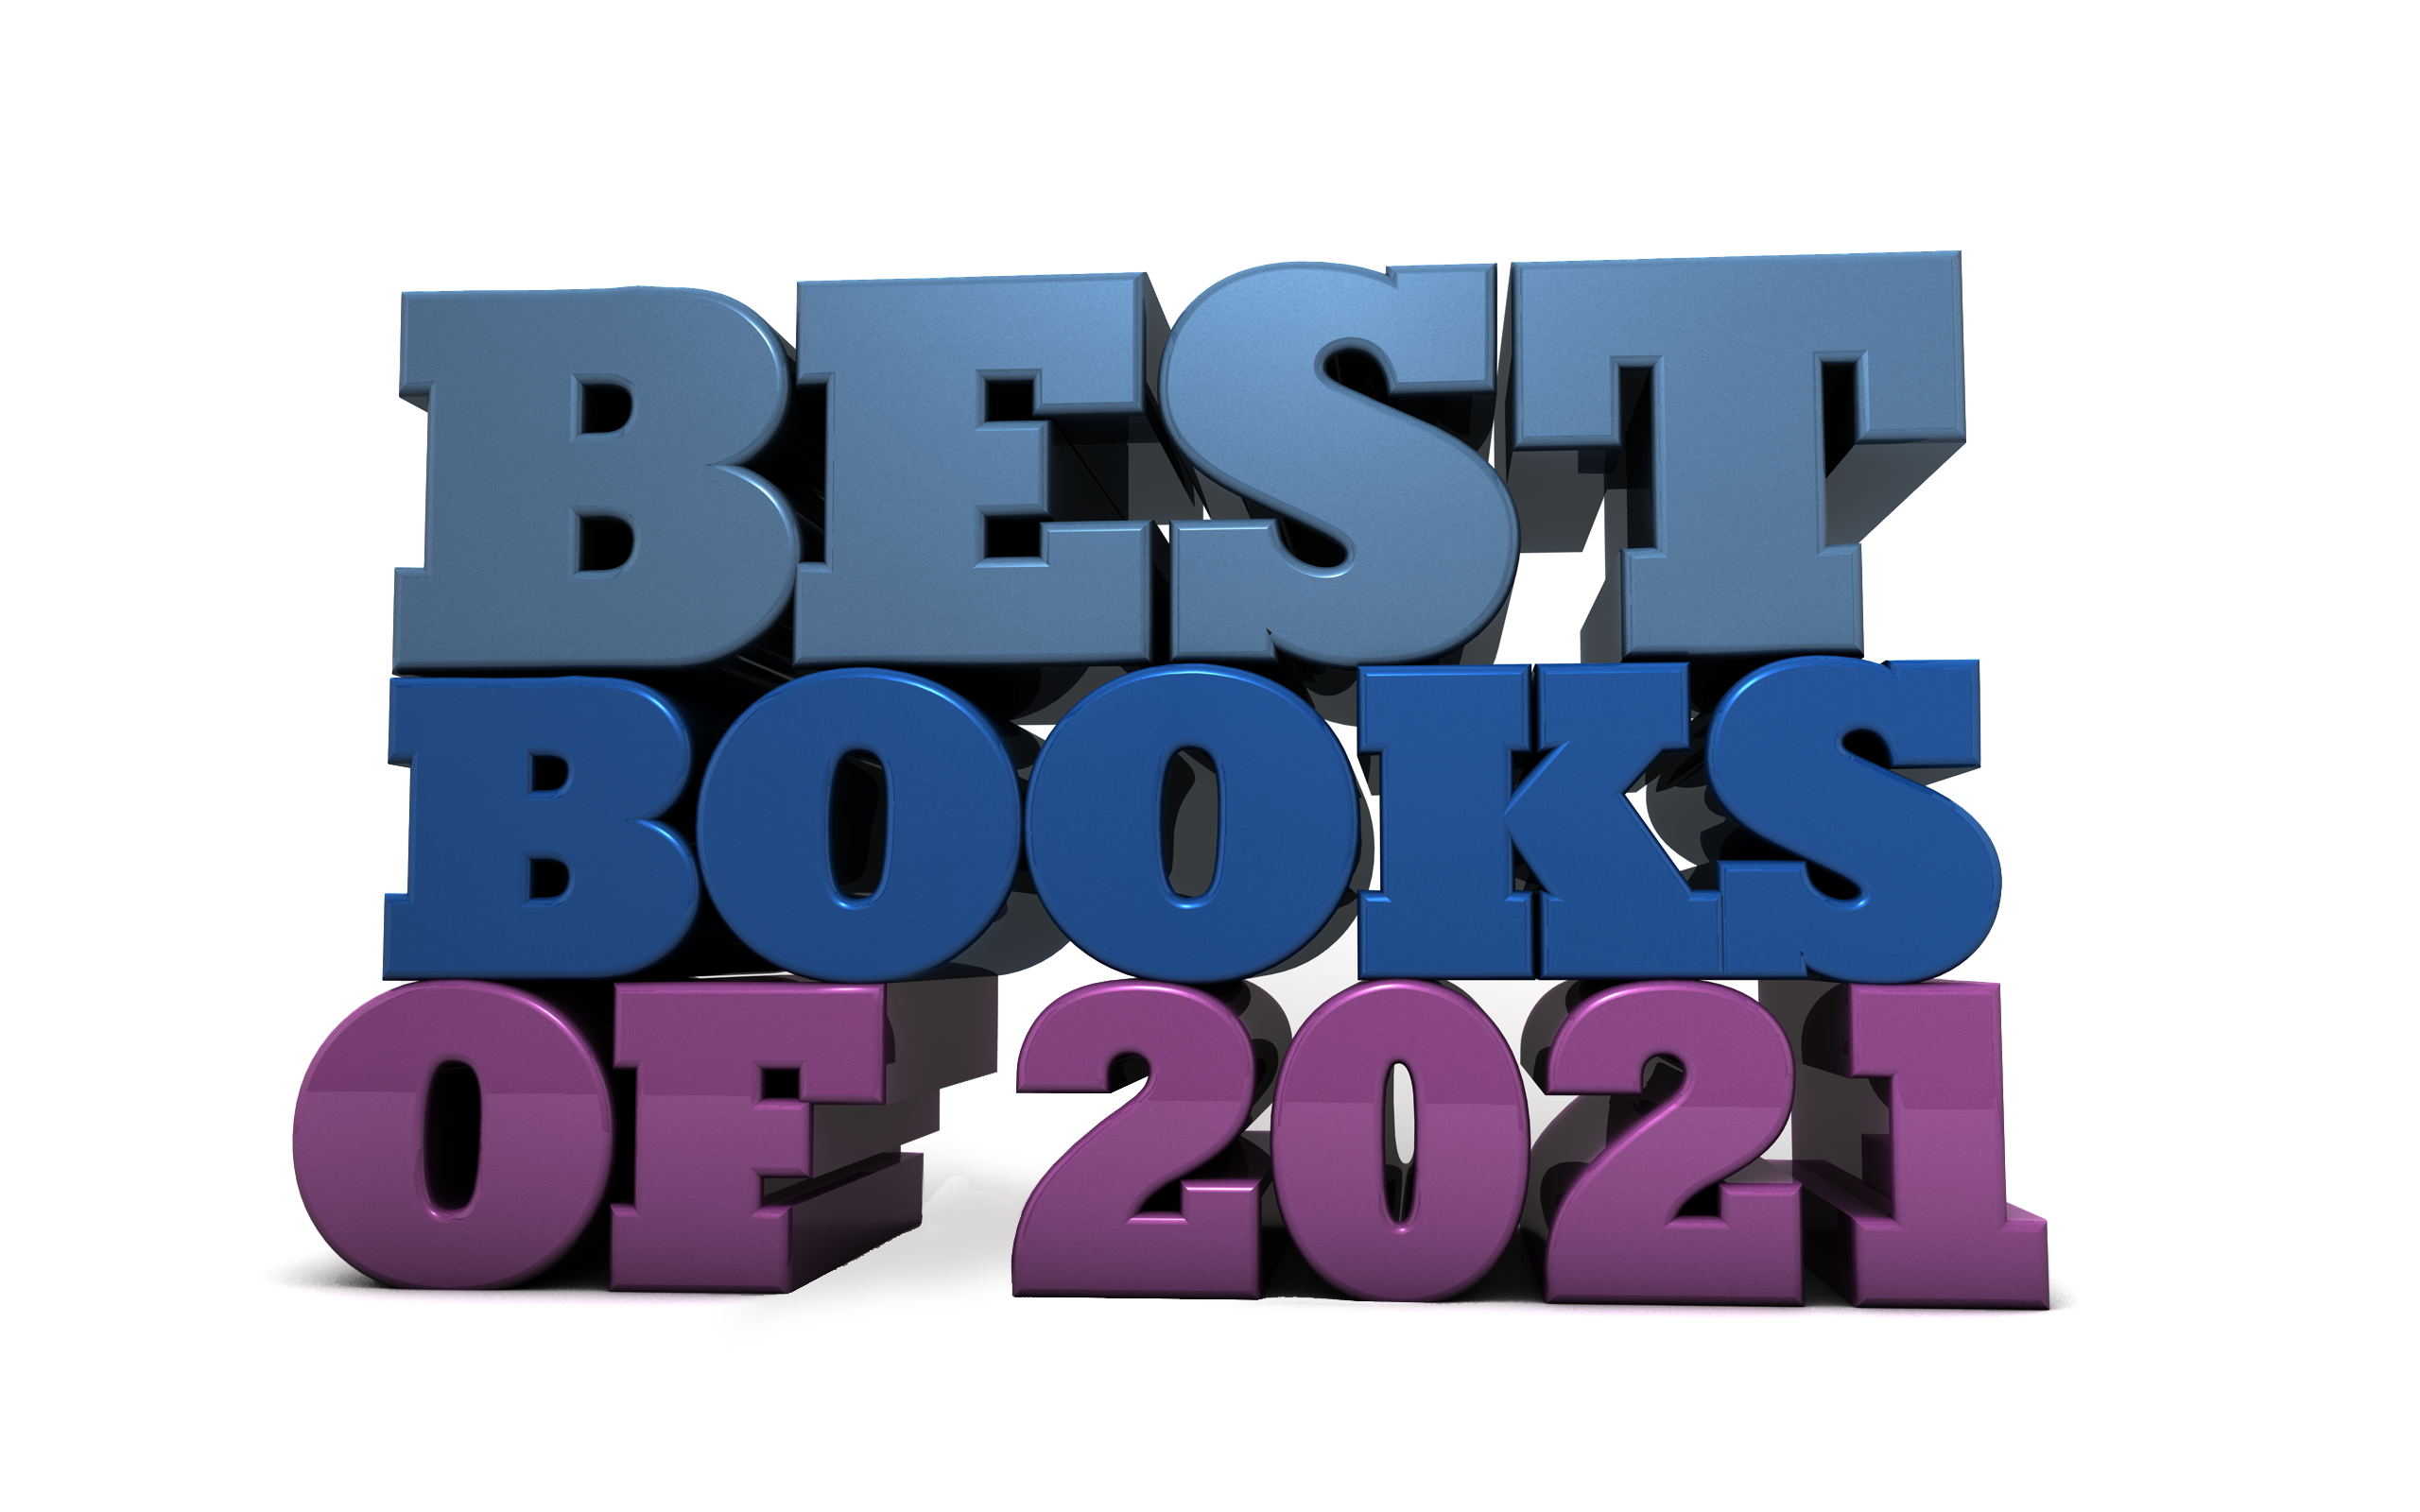 Best books of 2021 - Free marketing illustration